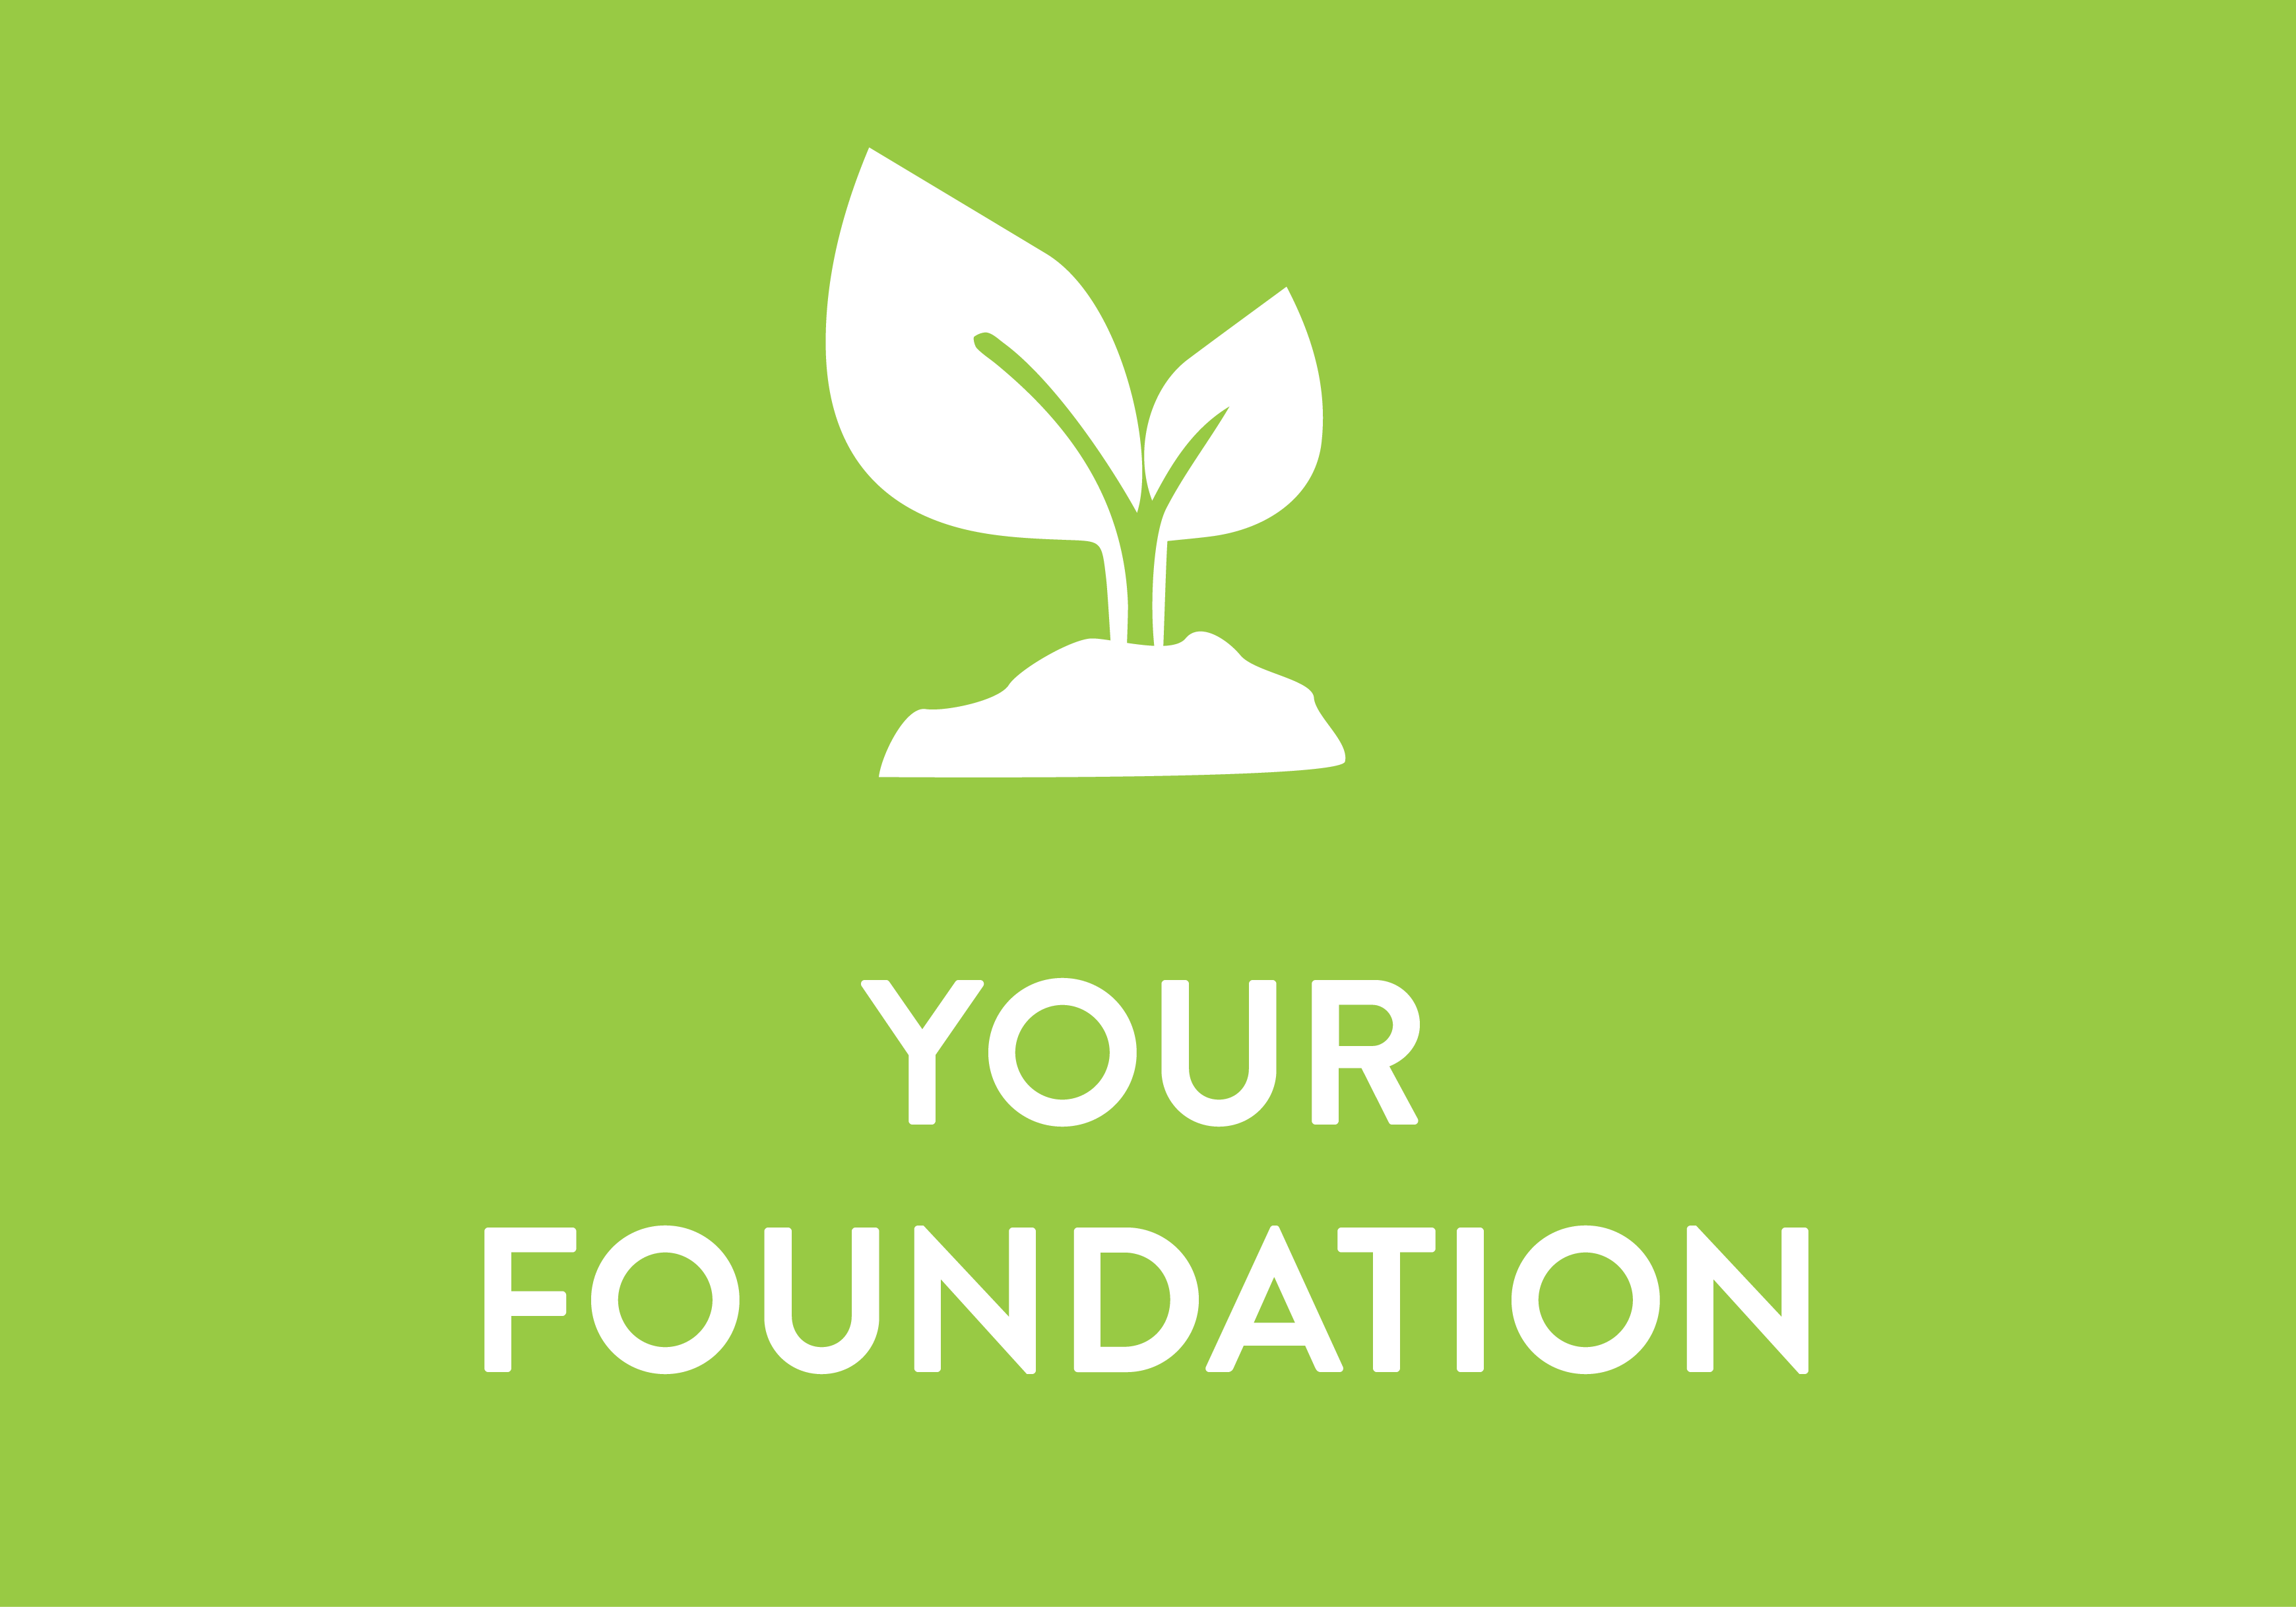 Your-Foundation-13